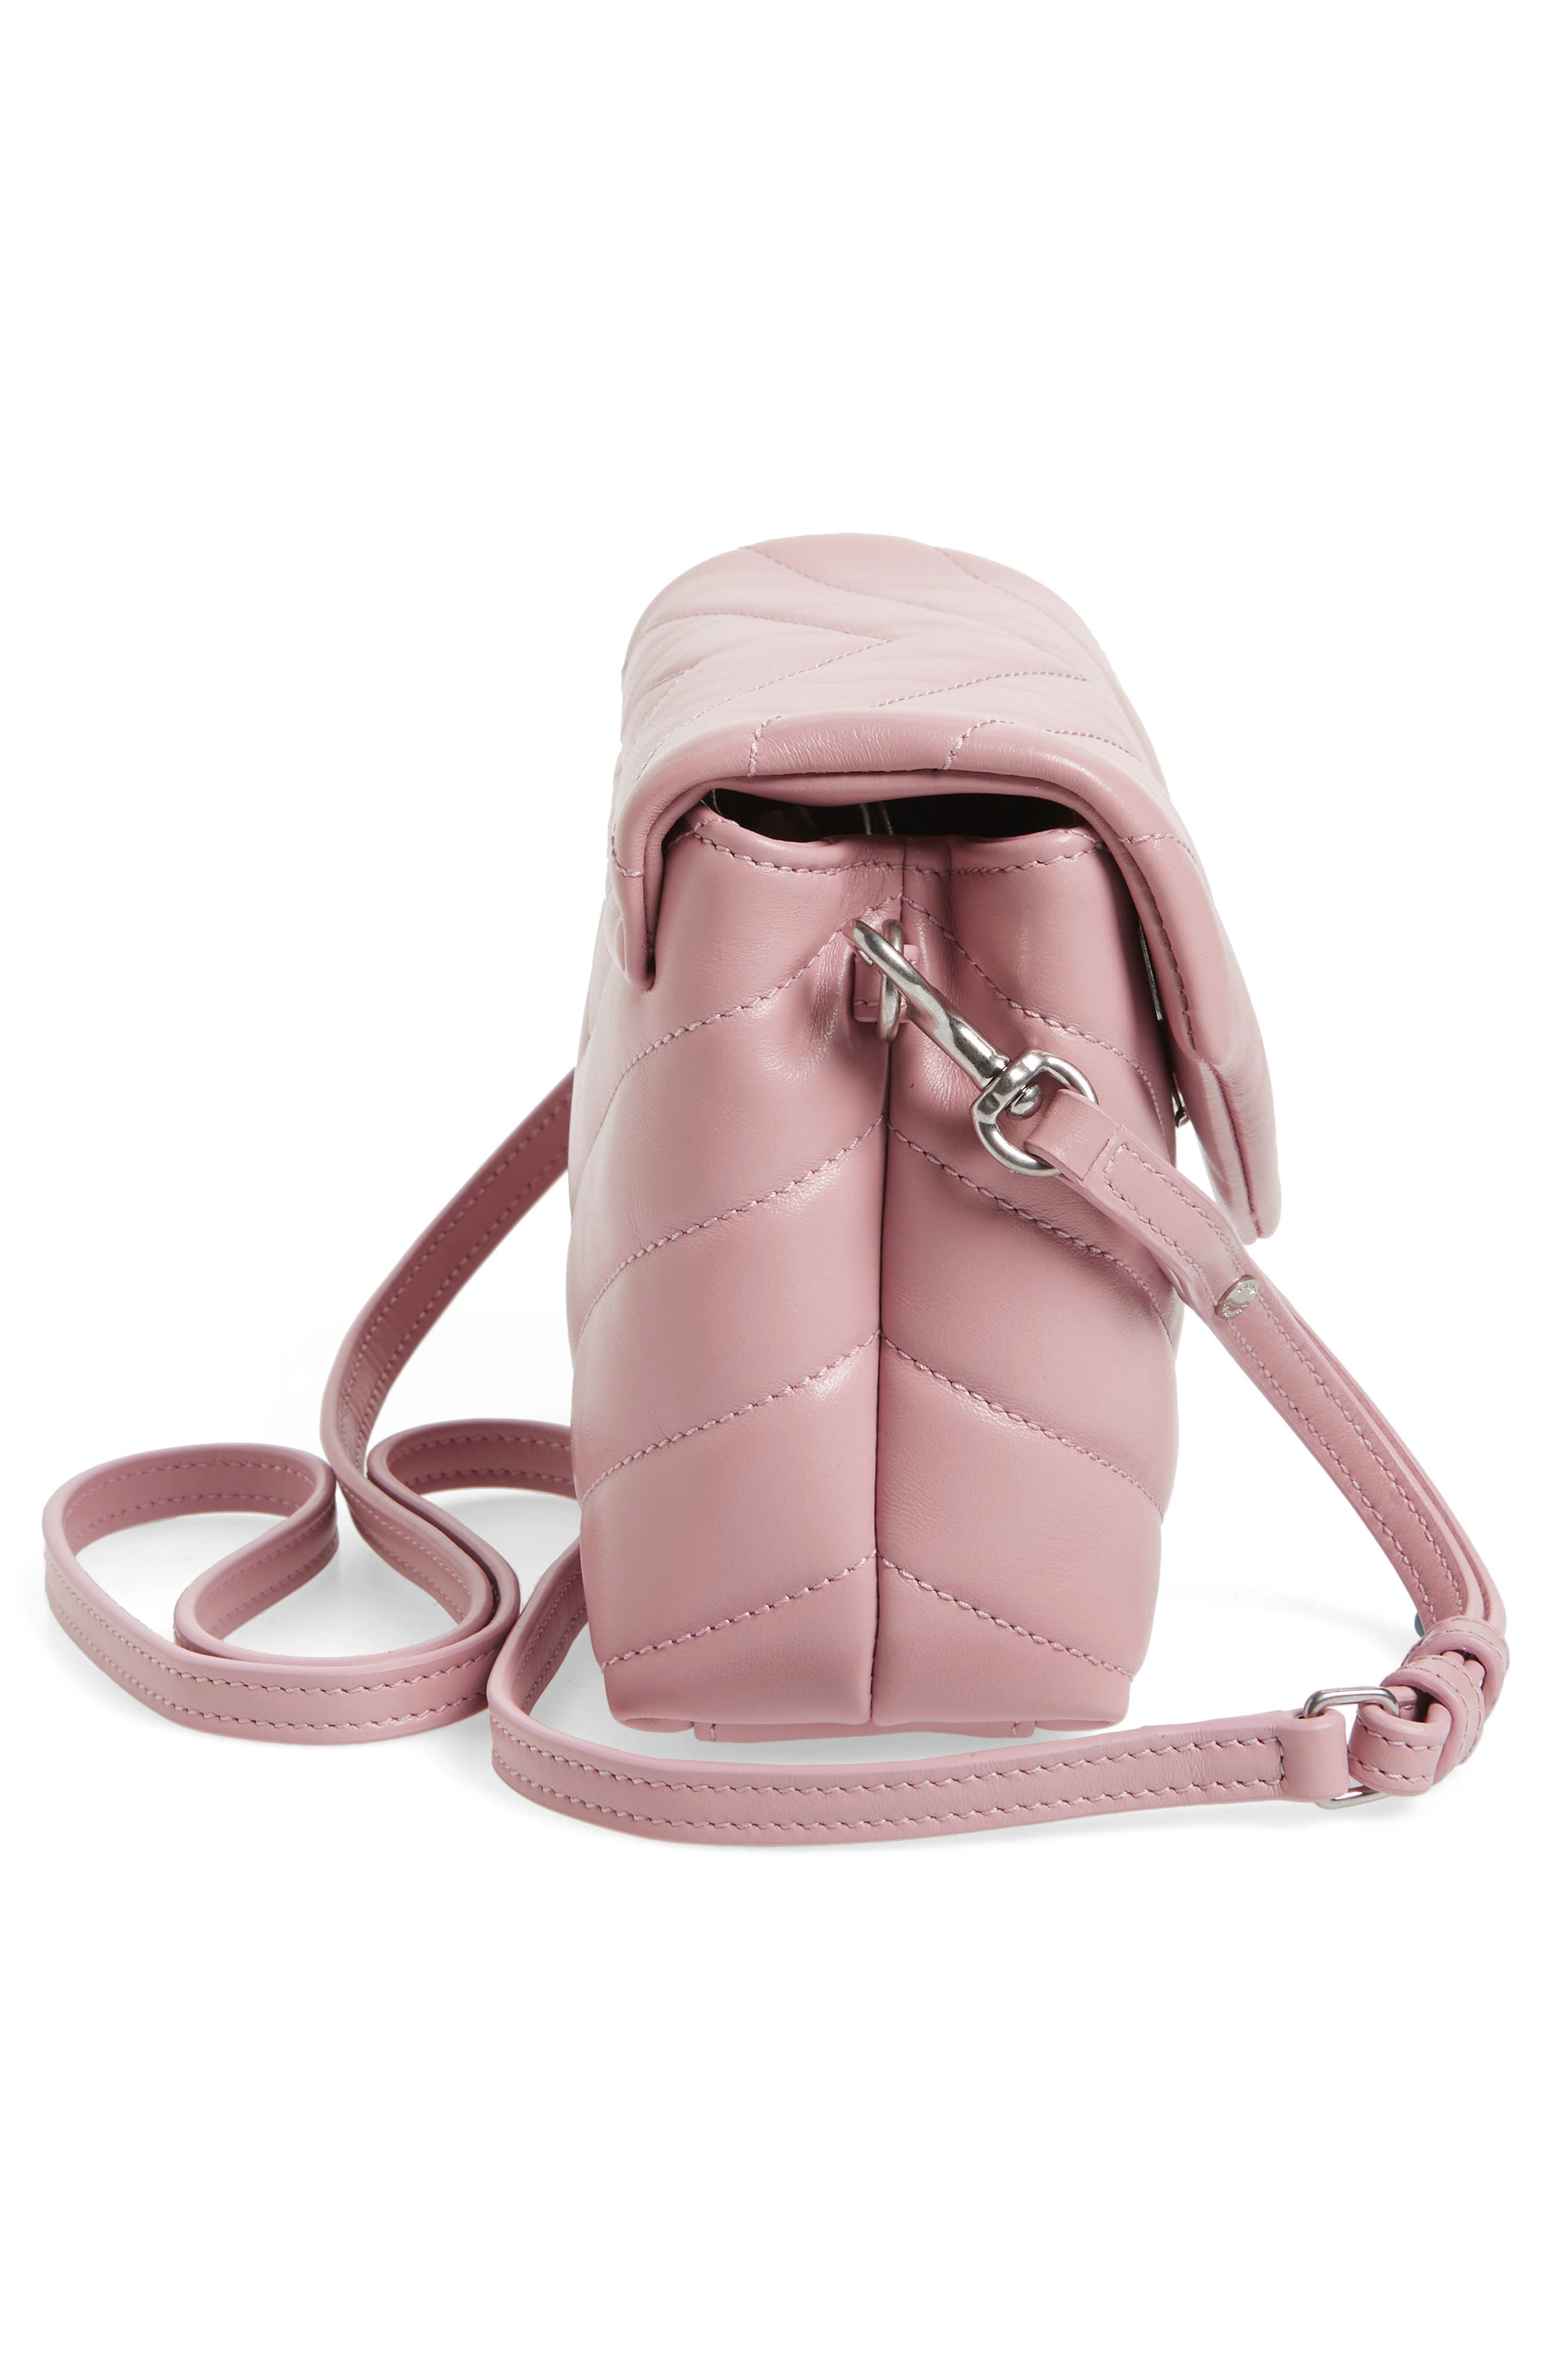 Toy LouLou Calfskin Leather Crossbody Bag,                             Alternate thumbnail 5, color,                             Tender Pink